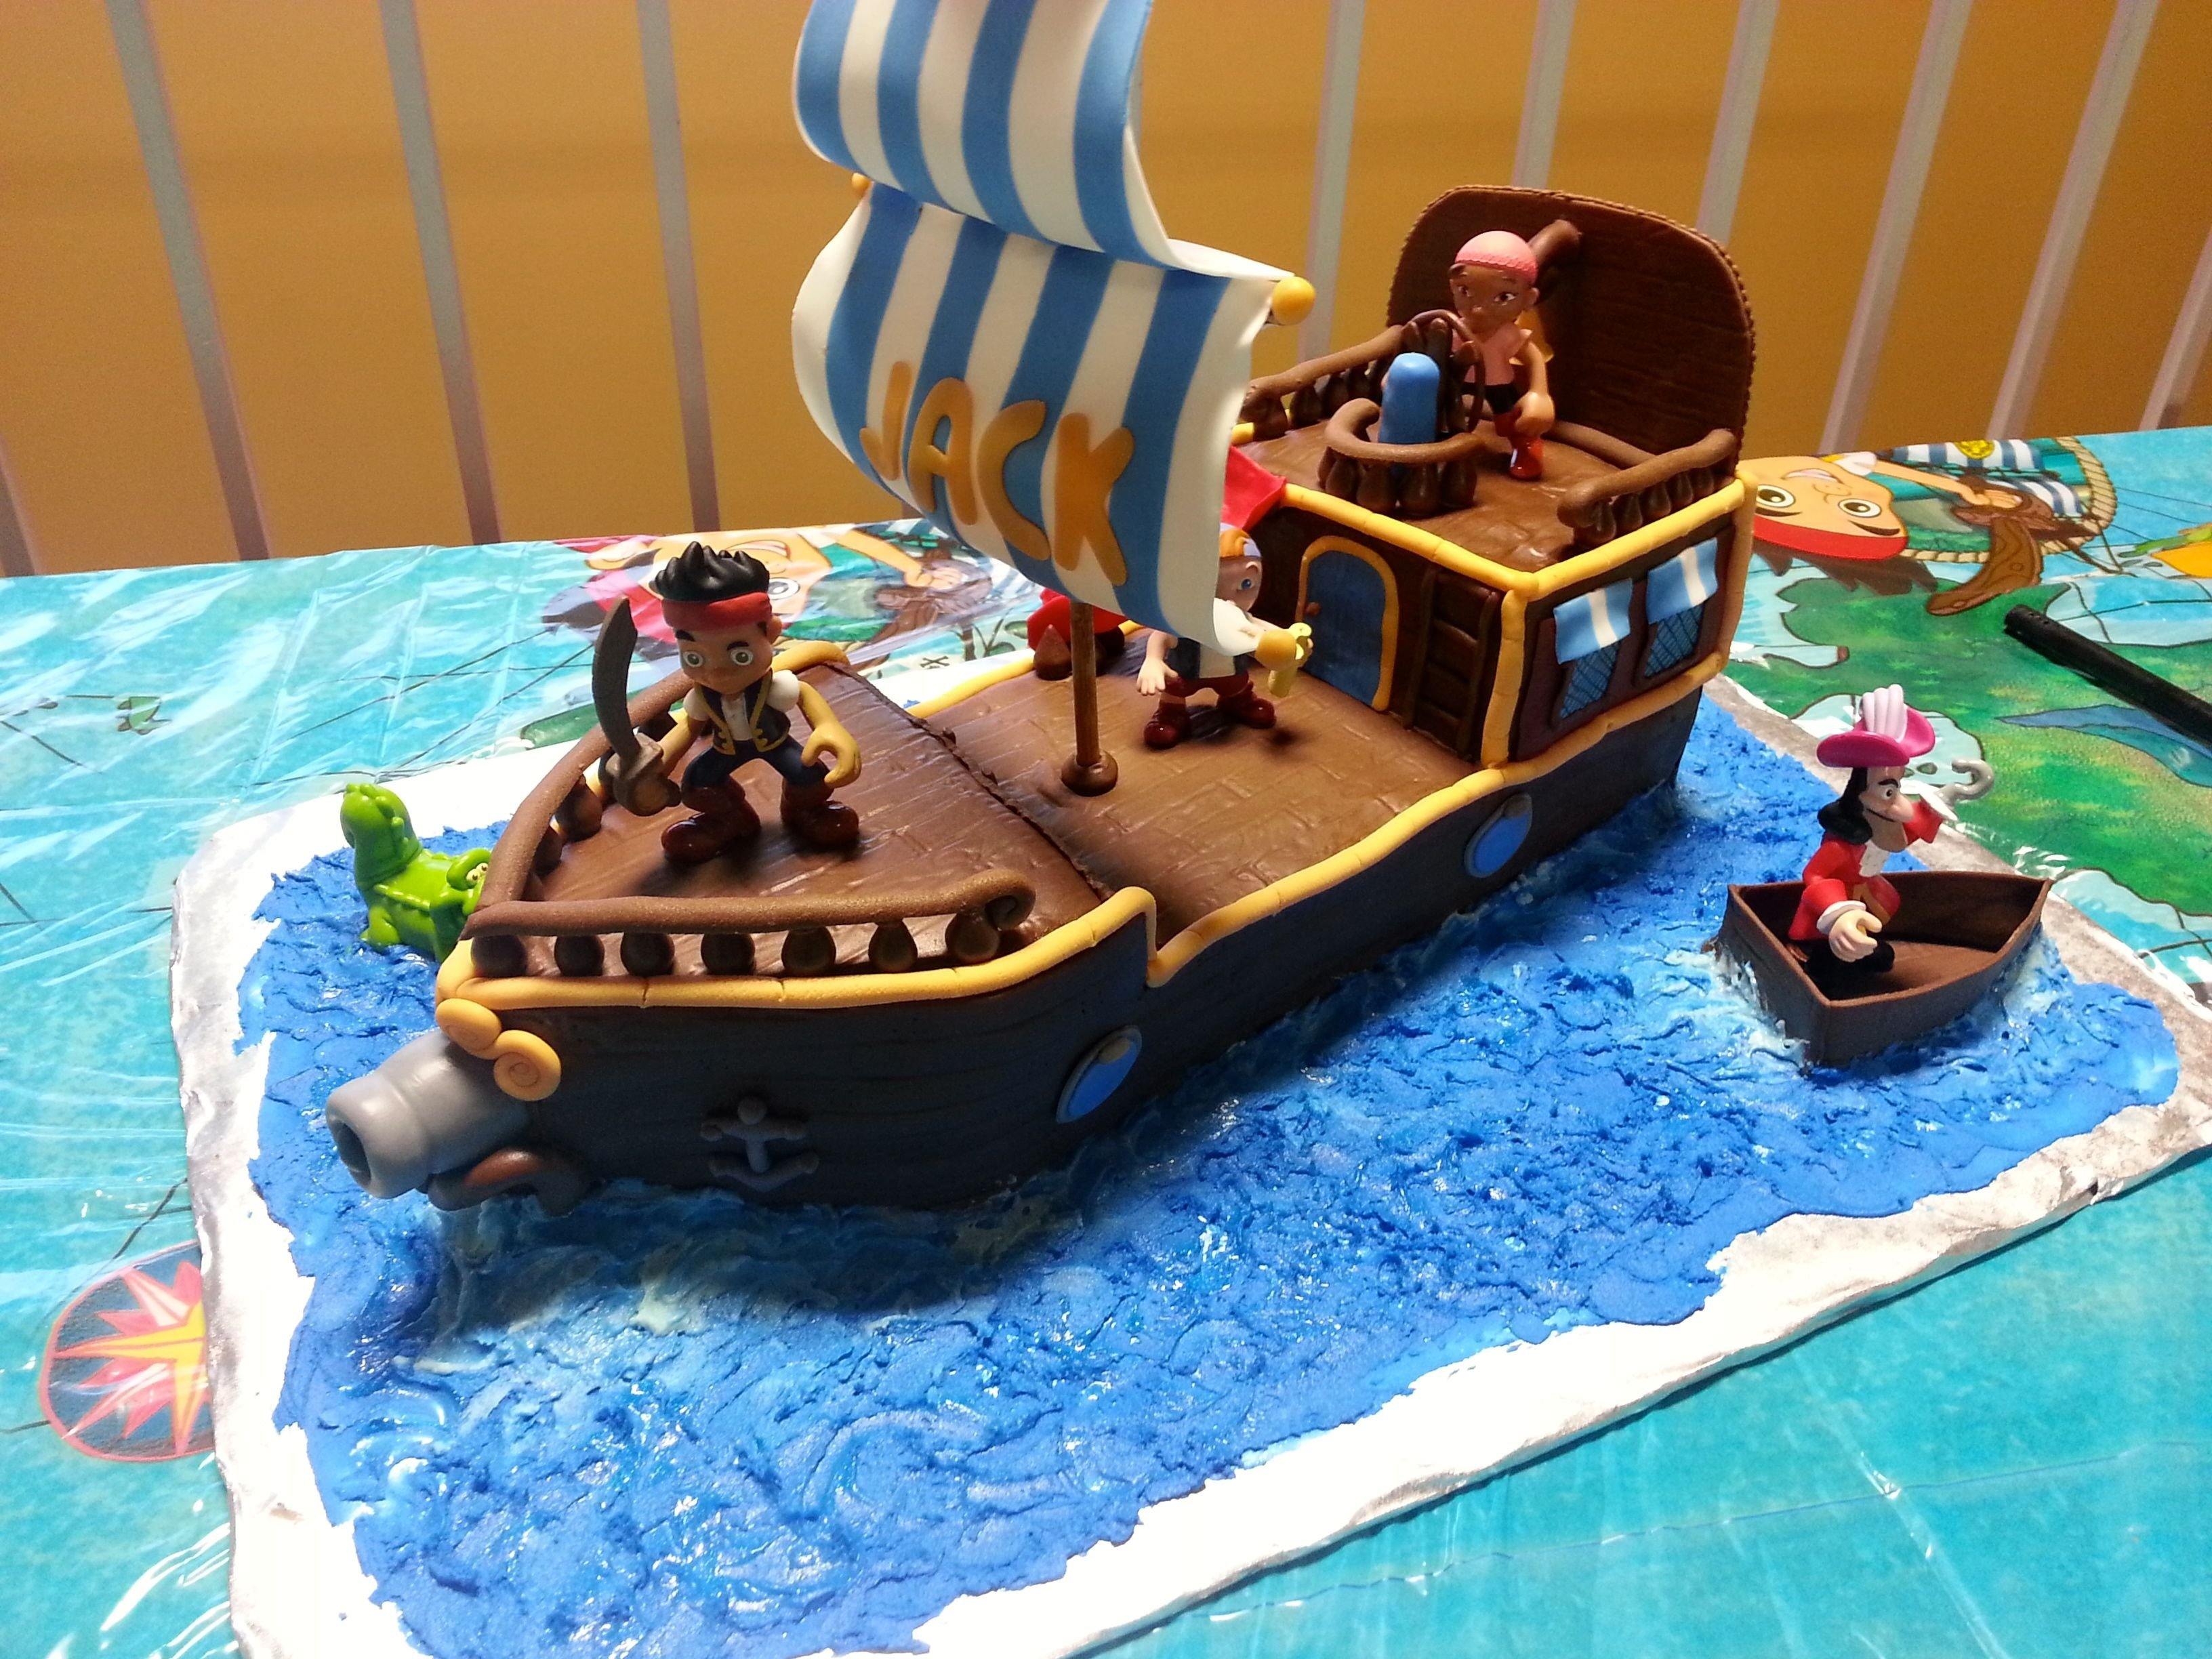 jake and the neverland pirates cake | jake and the neverland pirate